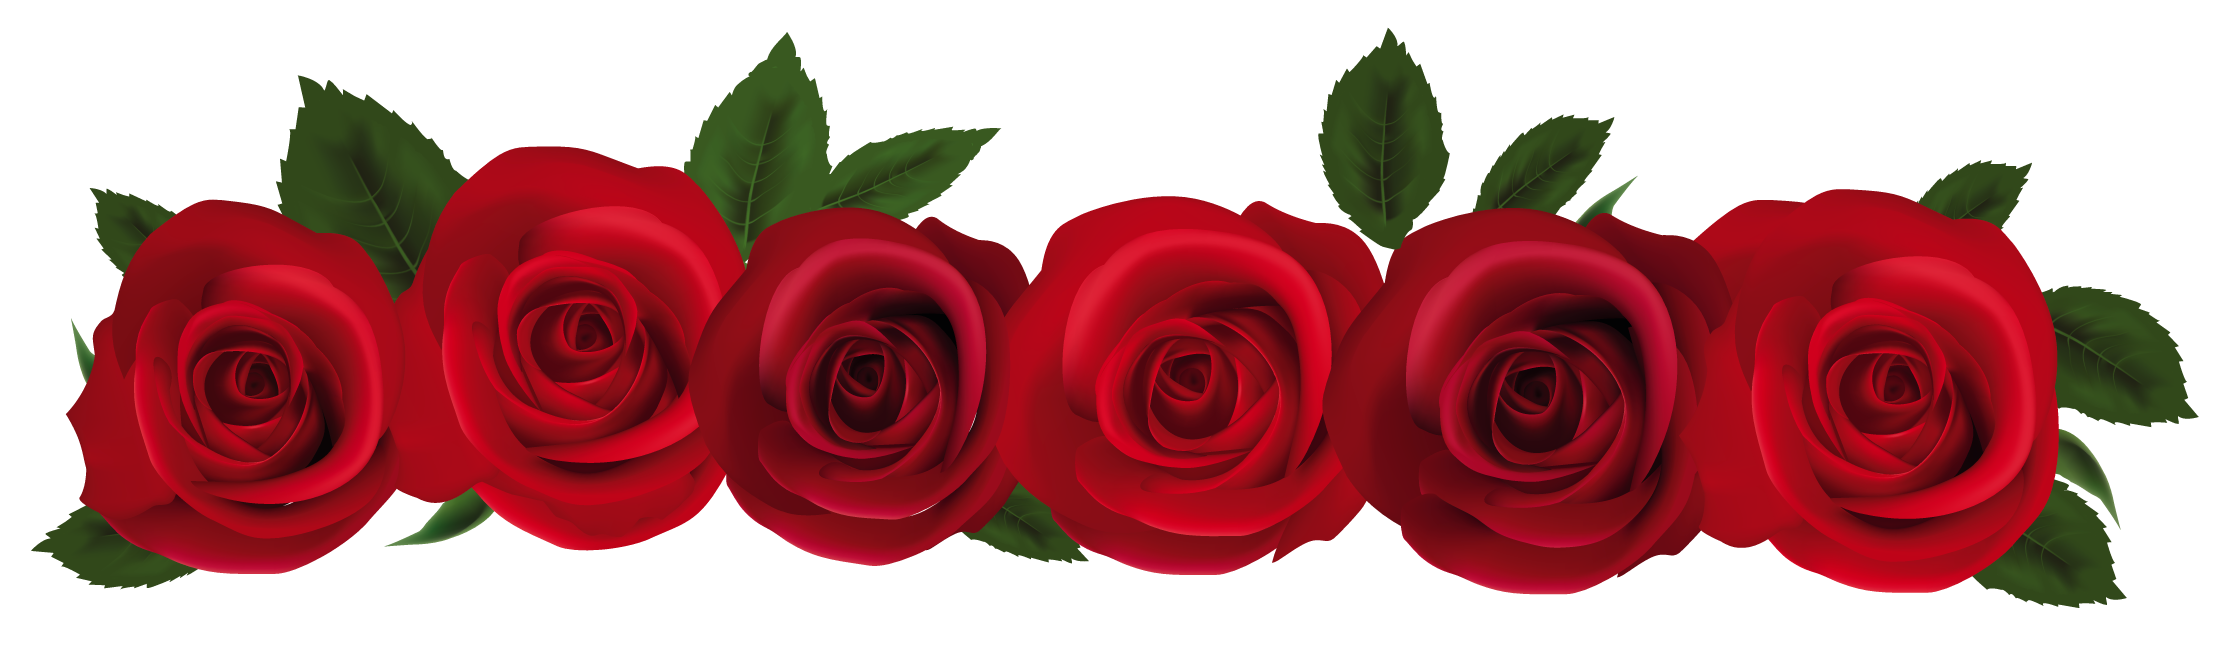 Red Rose clipart rose border #15